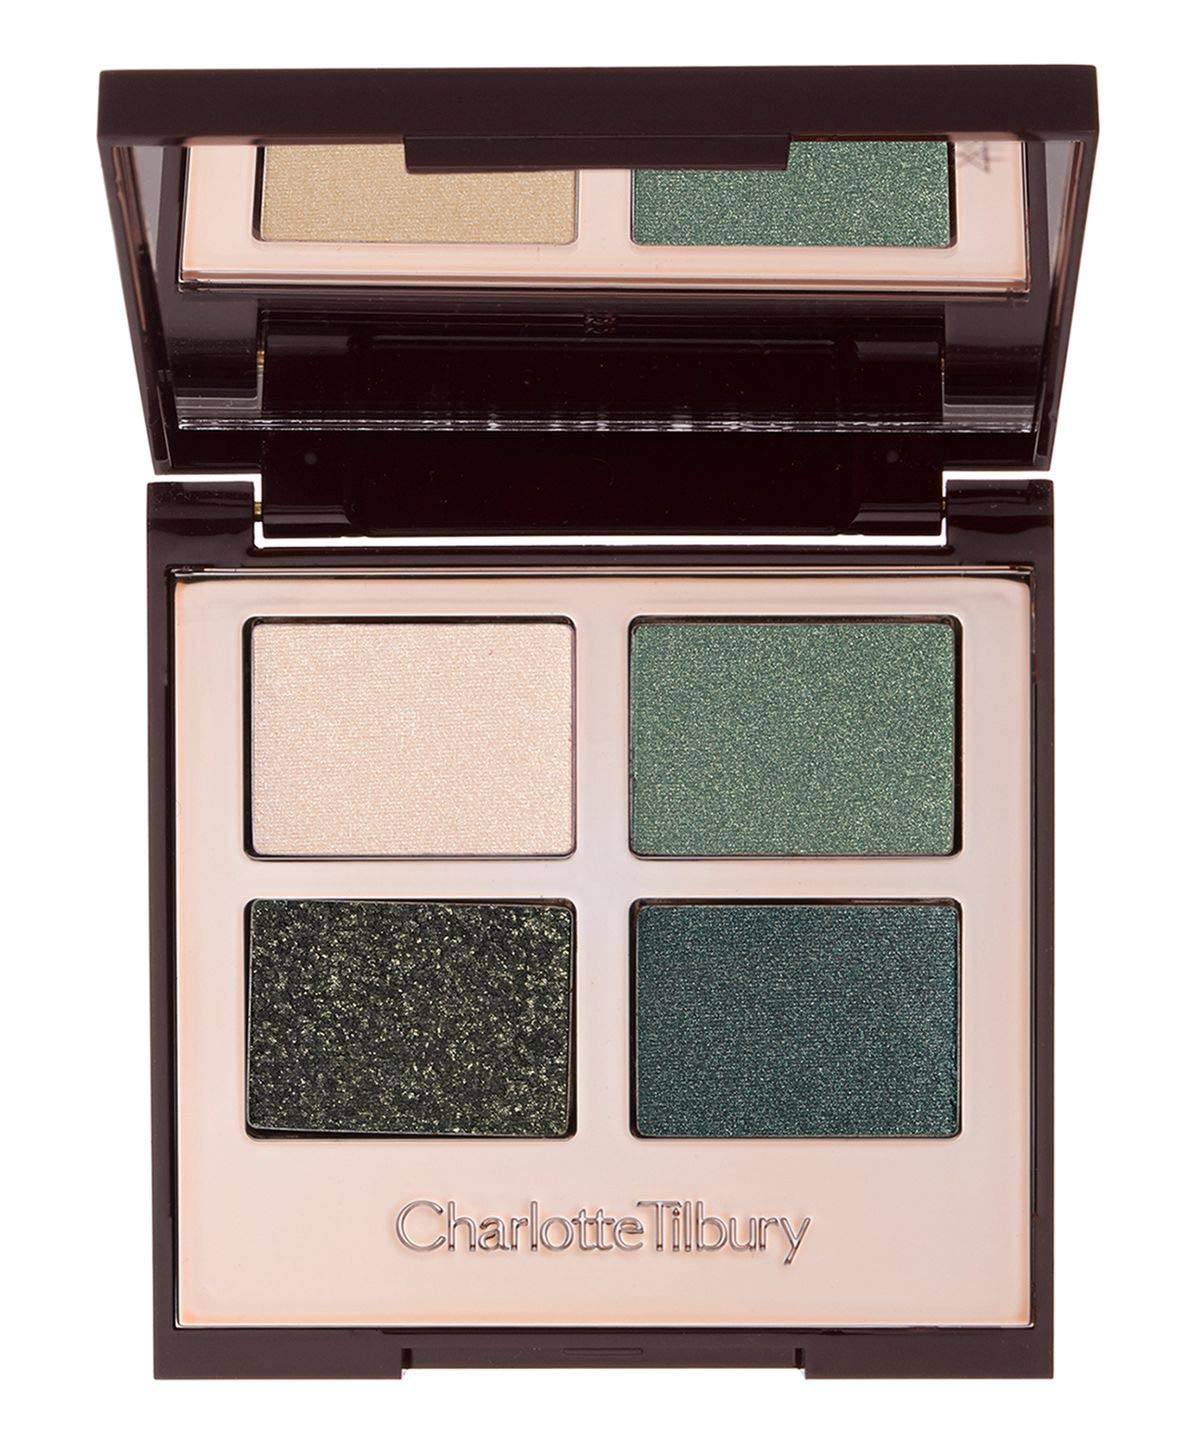 CHARLOTTE TILBURY Luxury Palette - The Rebel 5.2g B07HWSW255